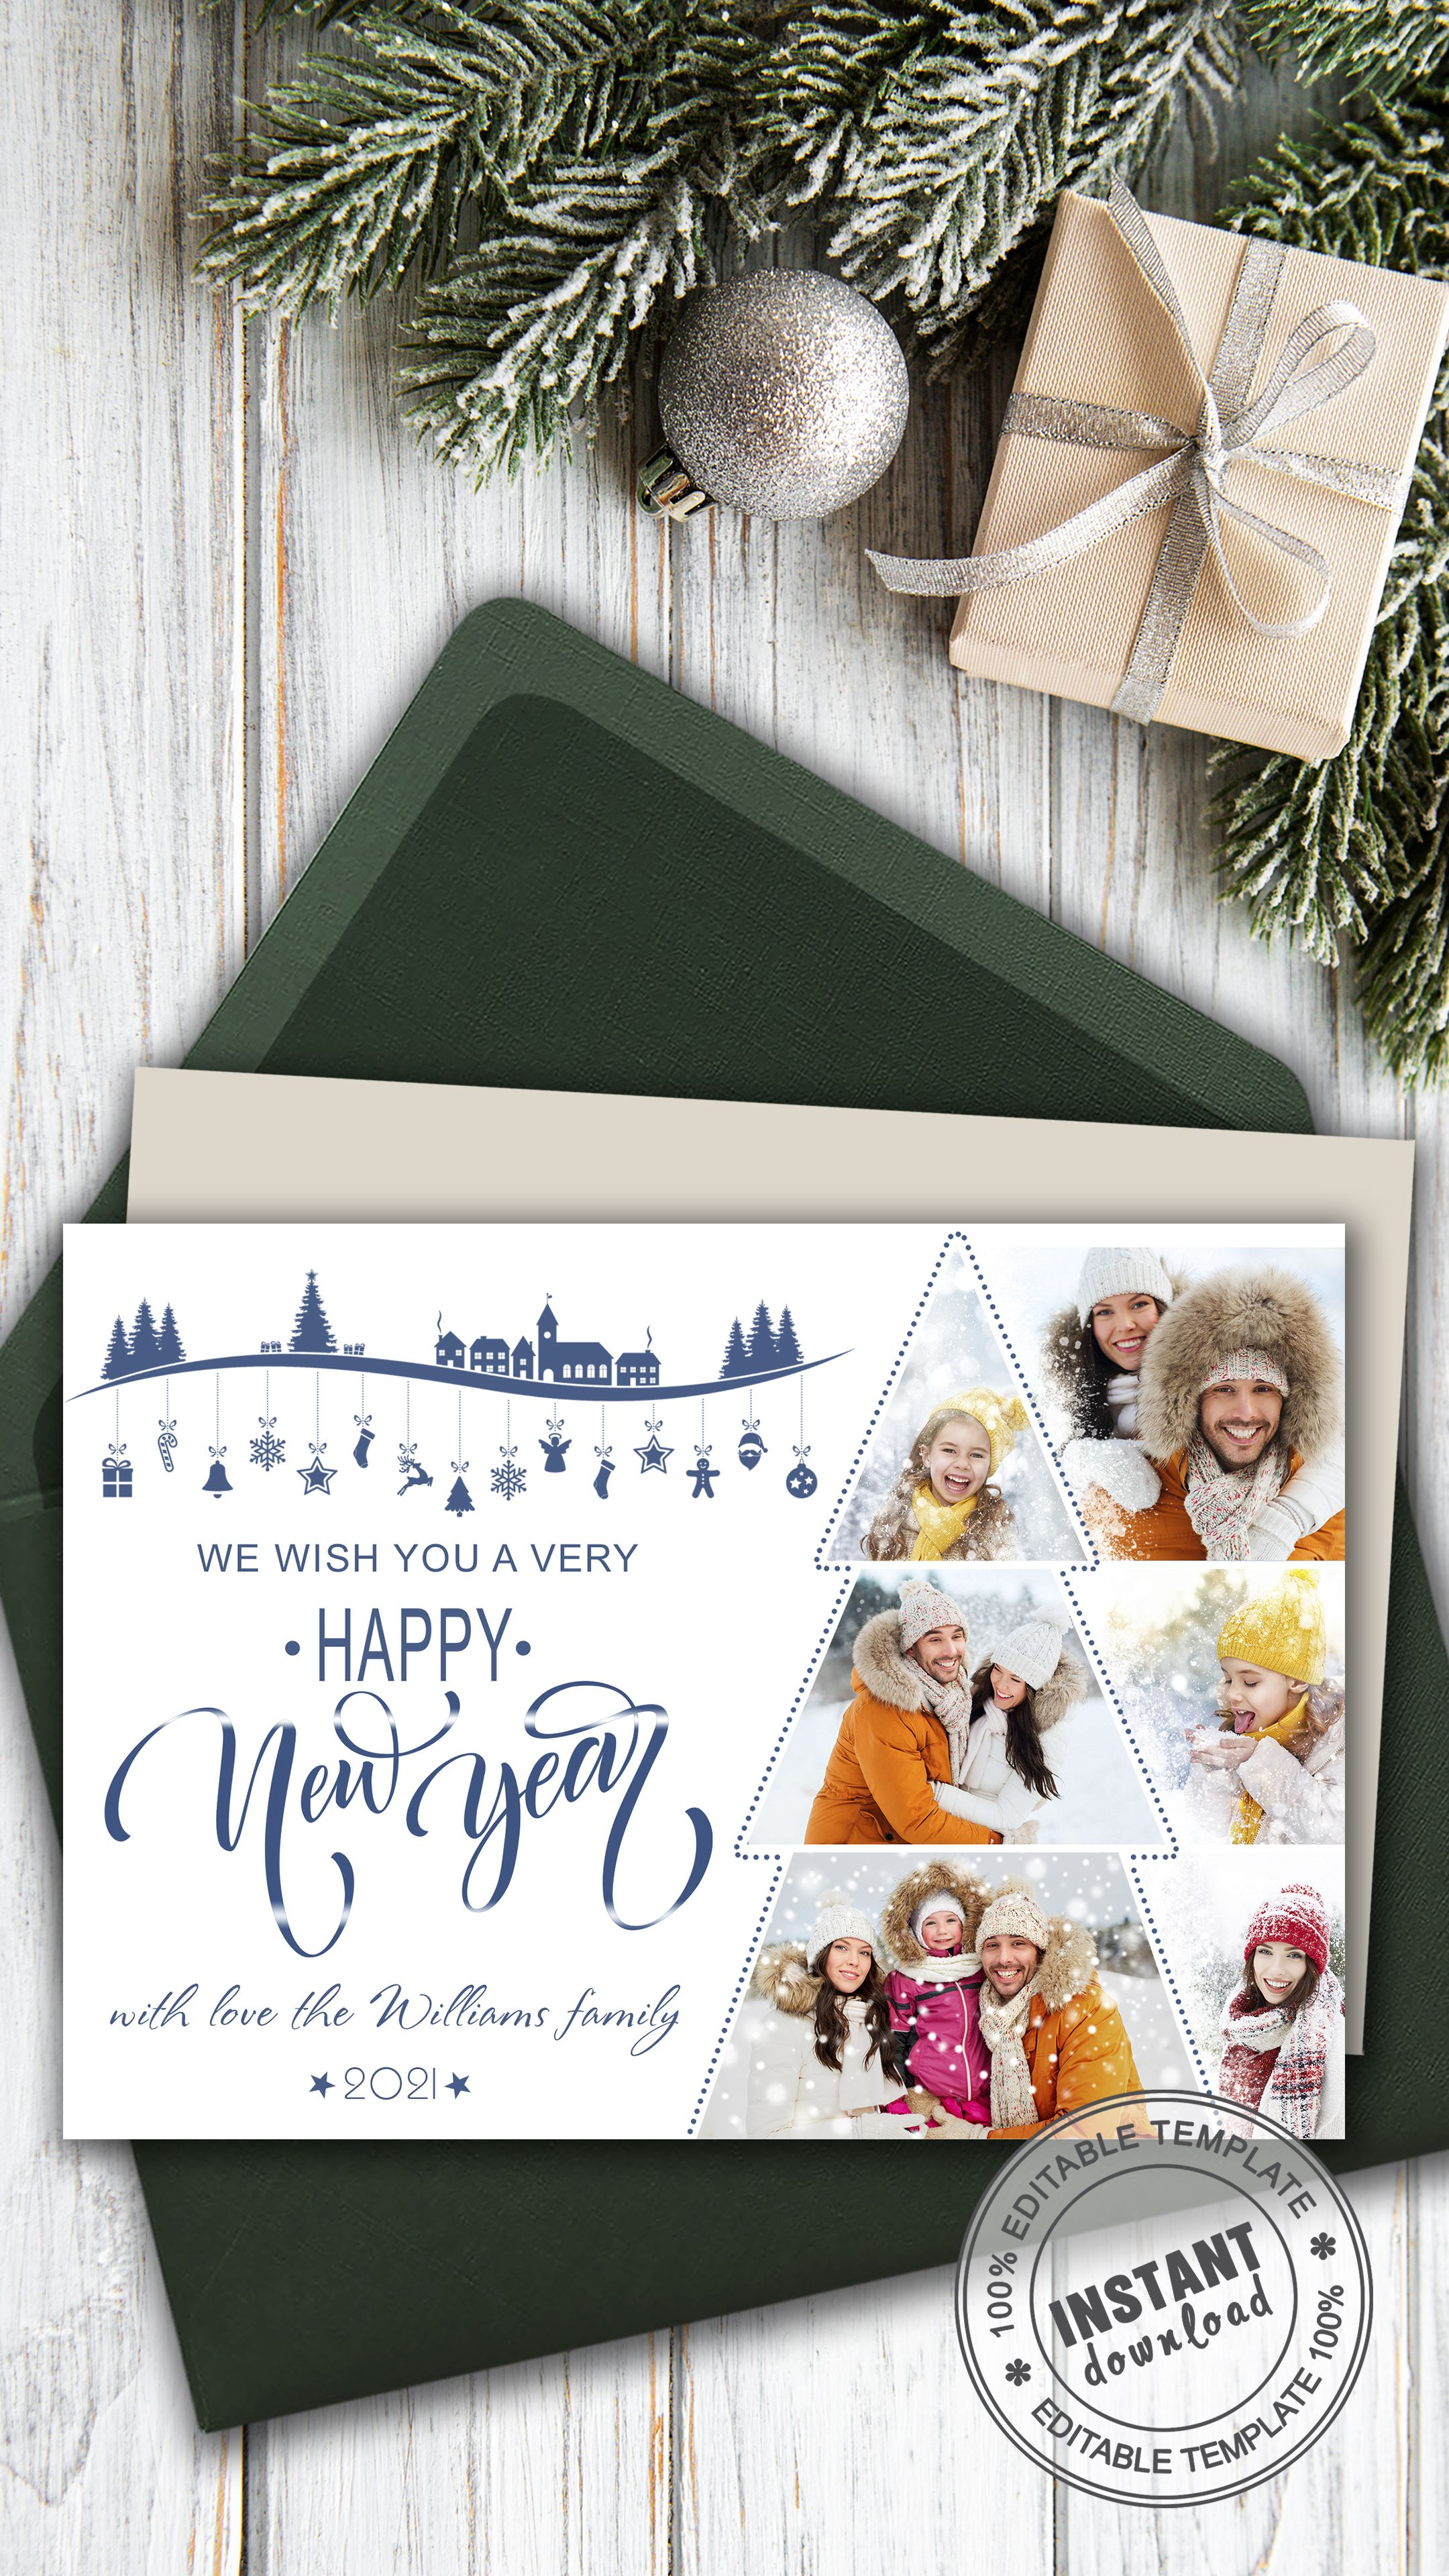 Card Template Christmas Tree Holiday Family Card With Photo Personalized Greeting New Year Card In 2021 Family Holiday Cards Personalised Christmas Cards Holiday Photo Cards